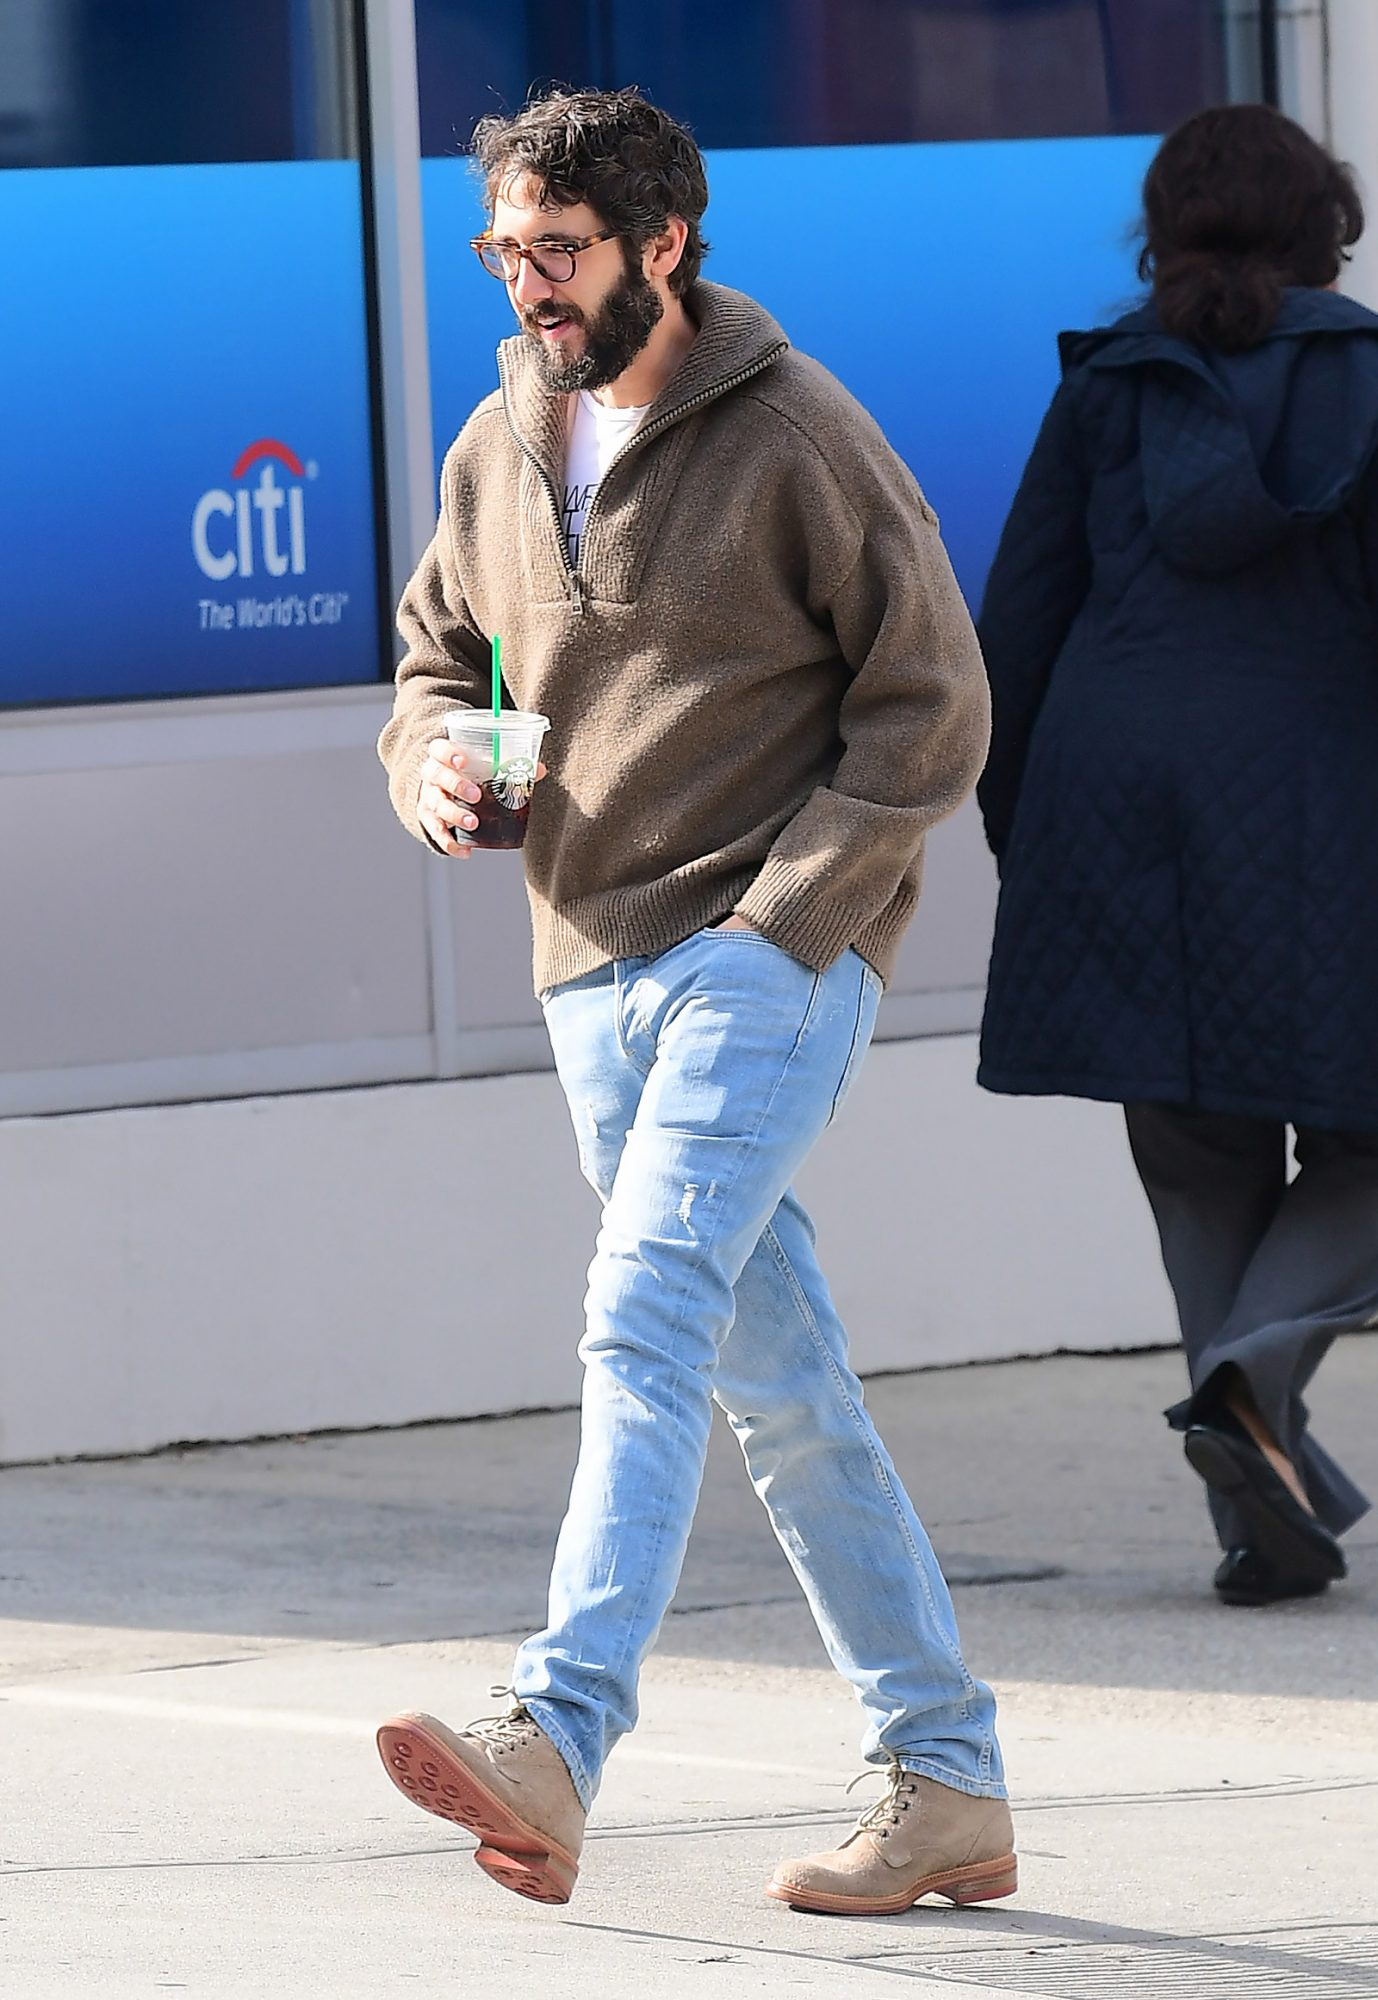 EXCLUSIVE: Josh Groban Spotted out in NYC Just Days after Witnessing NYC Terror Attack